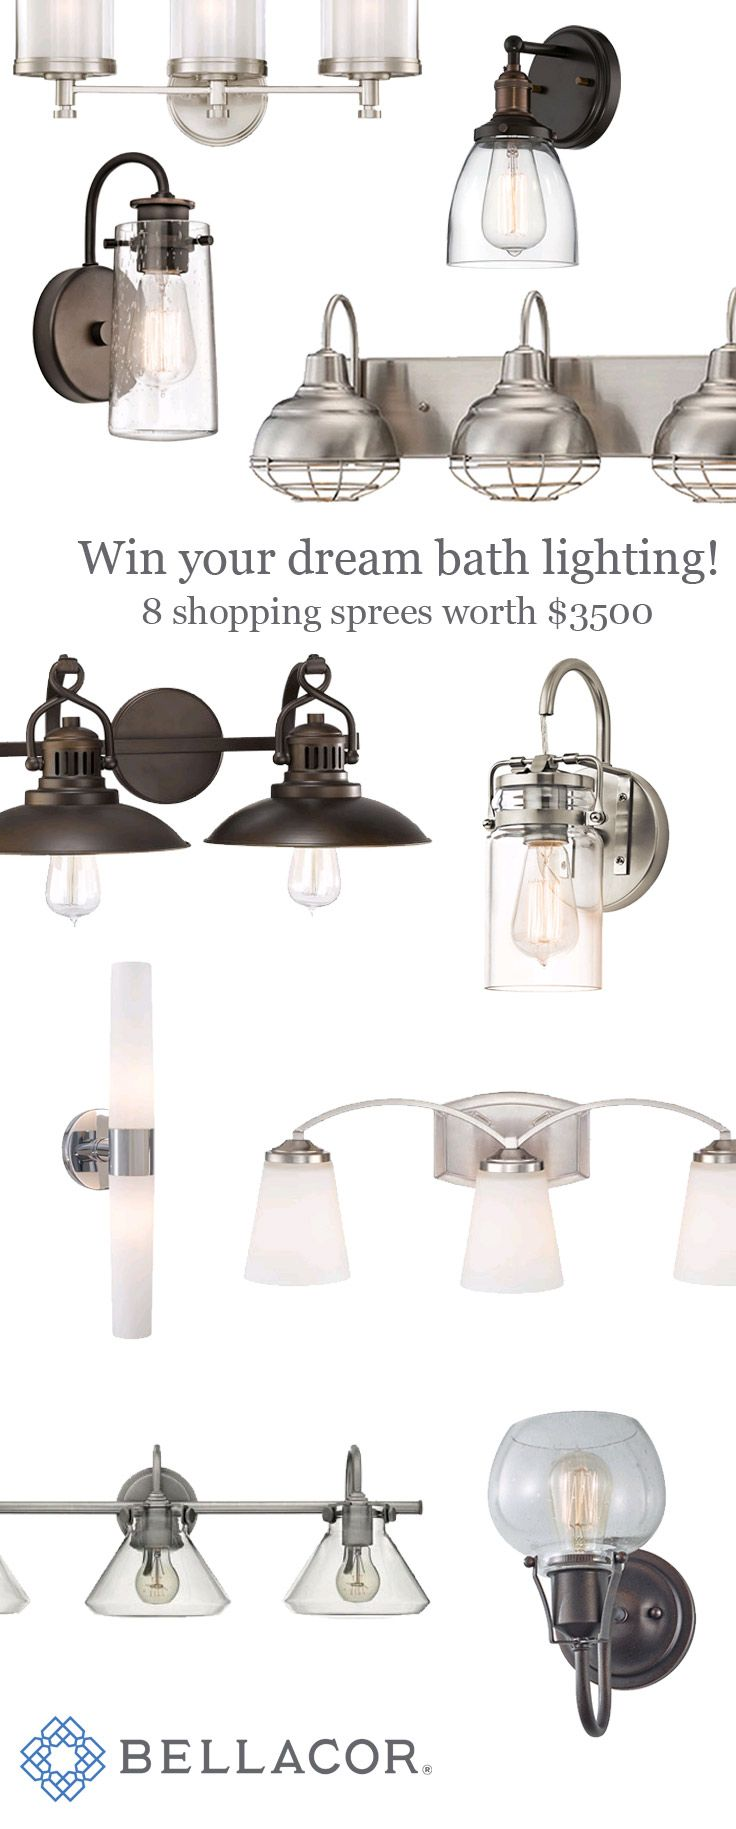 Farmhouse Bathroom Light Fixtures Magnificent $500 Bath Lighting Shopping Sprees Pick Out Your Dream Bathroom